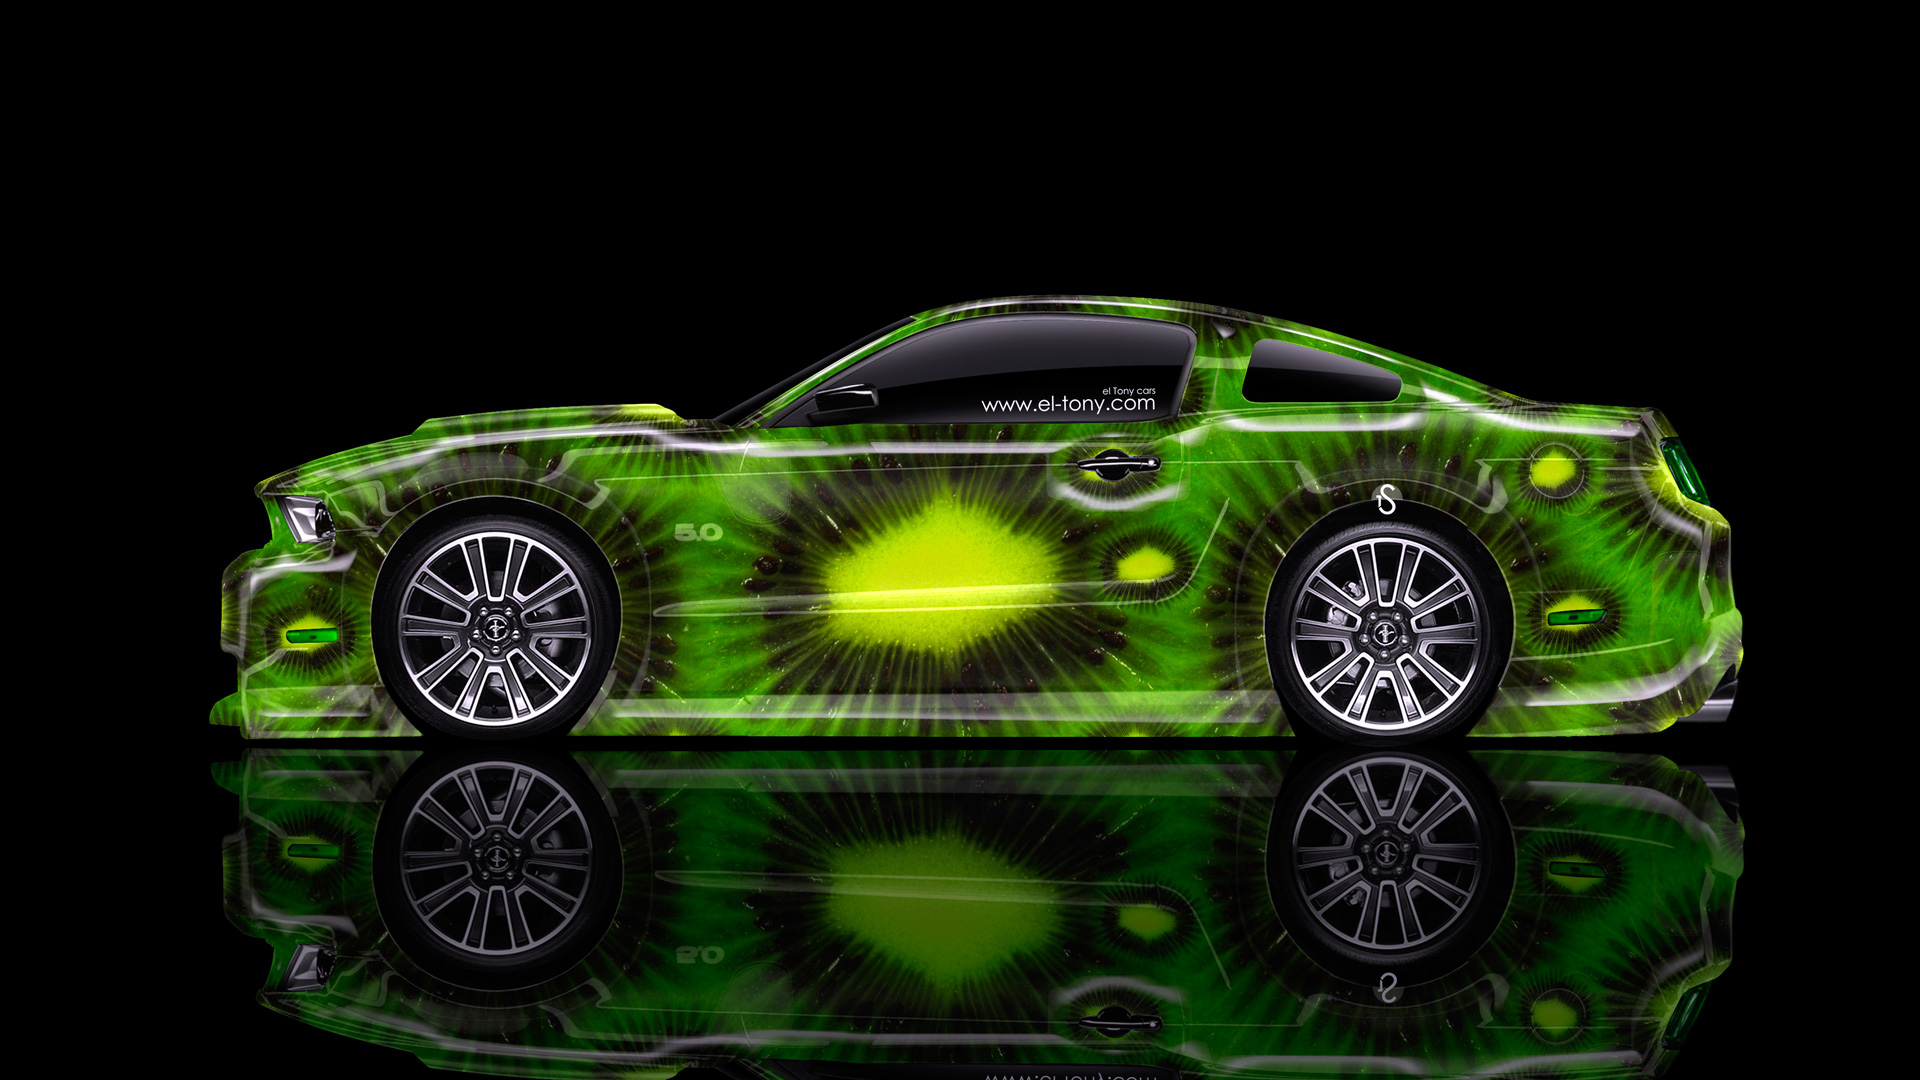 Ford Mustang Gt Muscle Side Kiwi Aerography Car 2014 Photoshop Hd